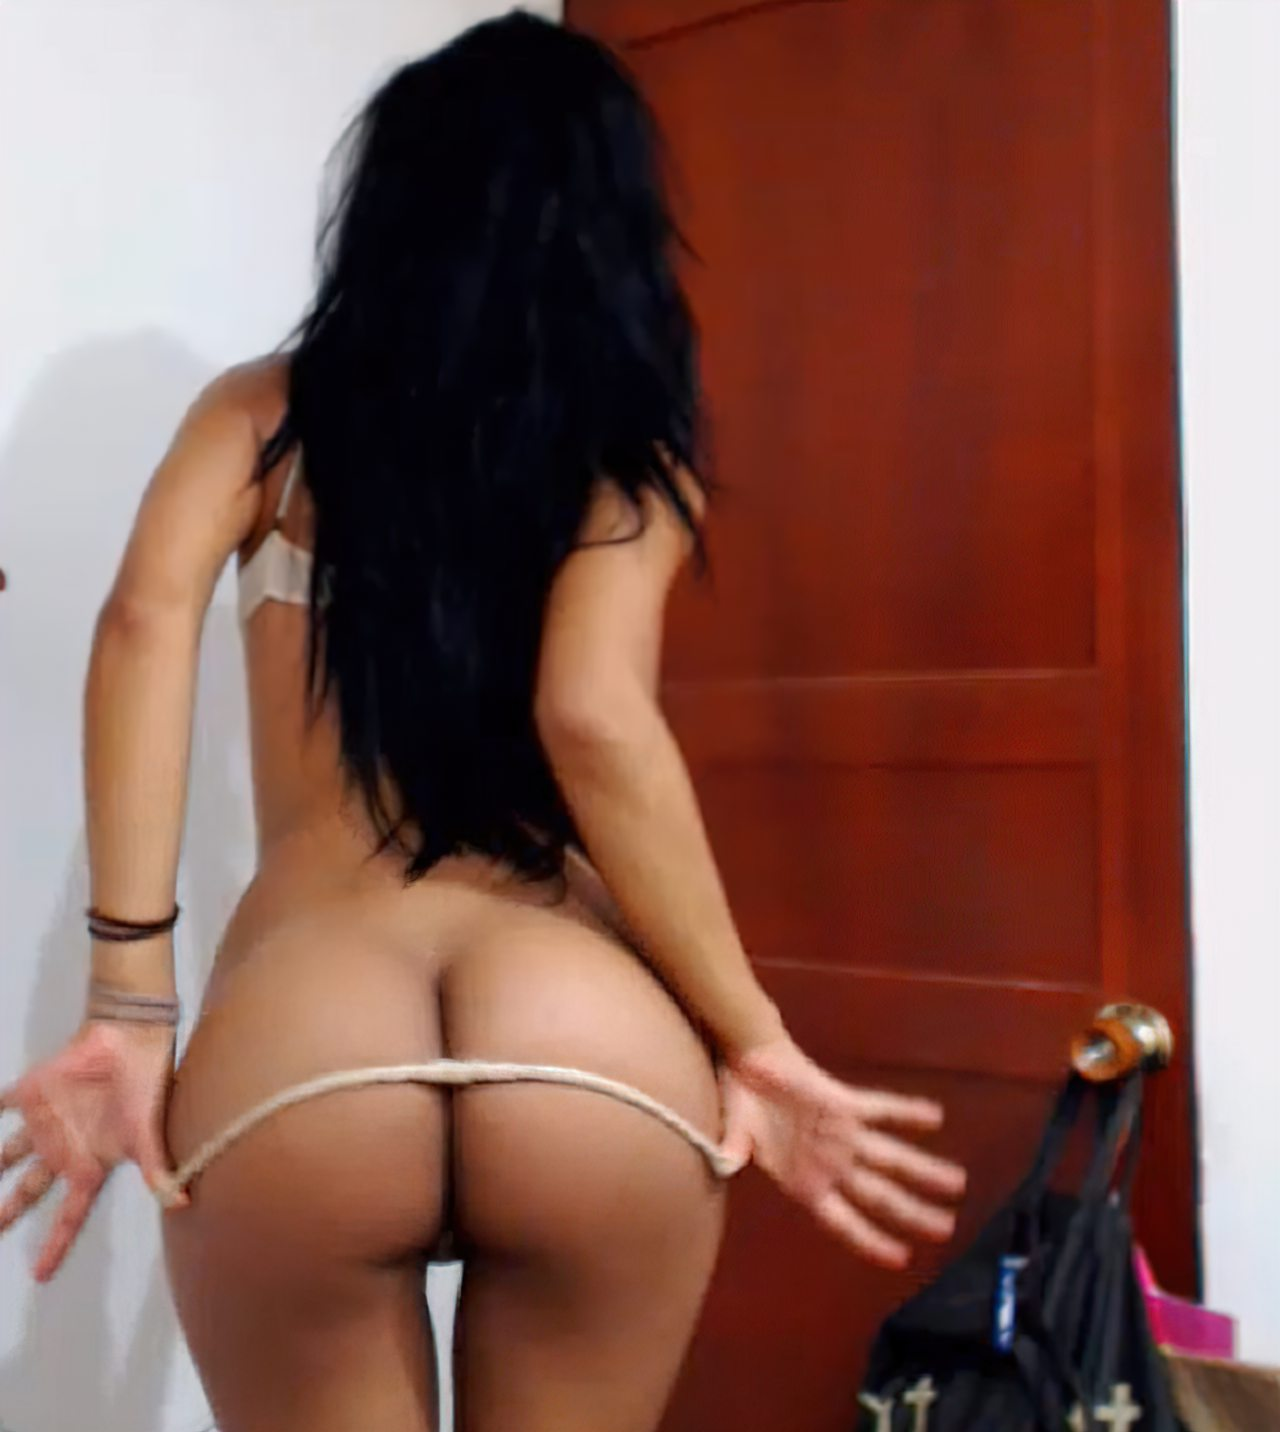 Morena Amadora Webcam (4)